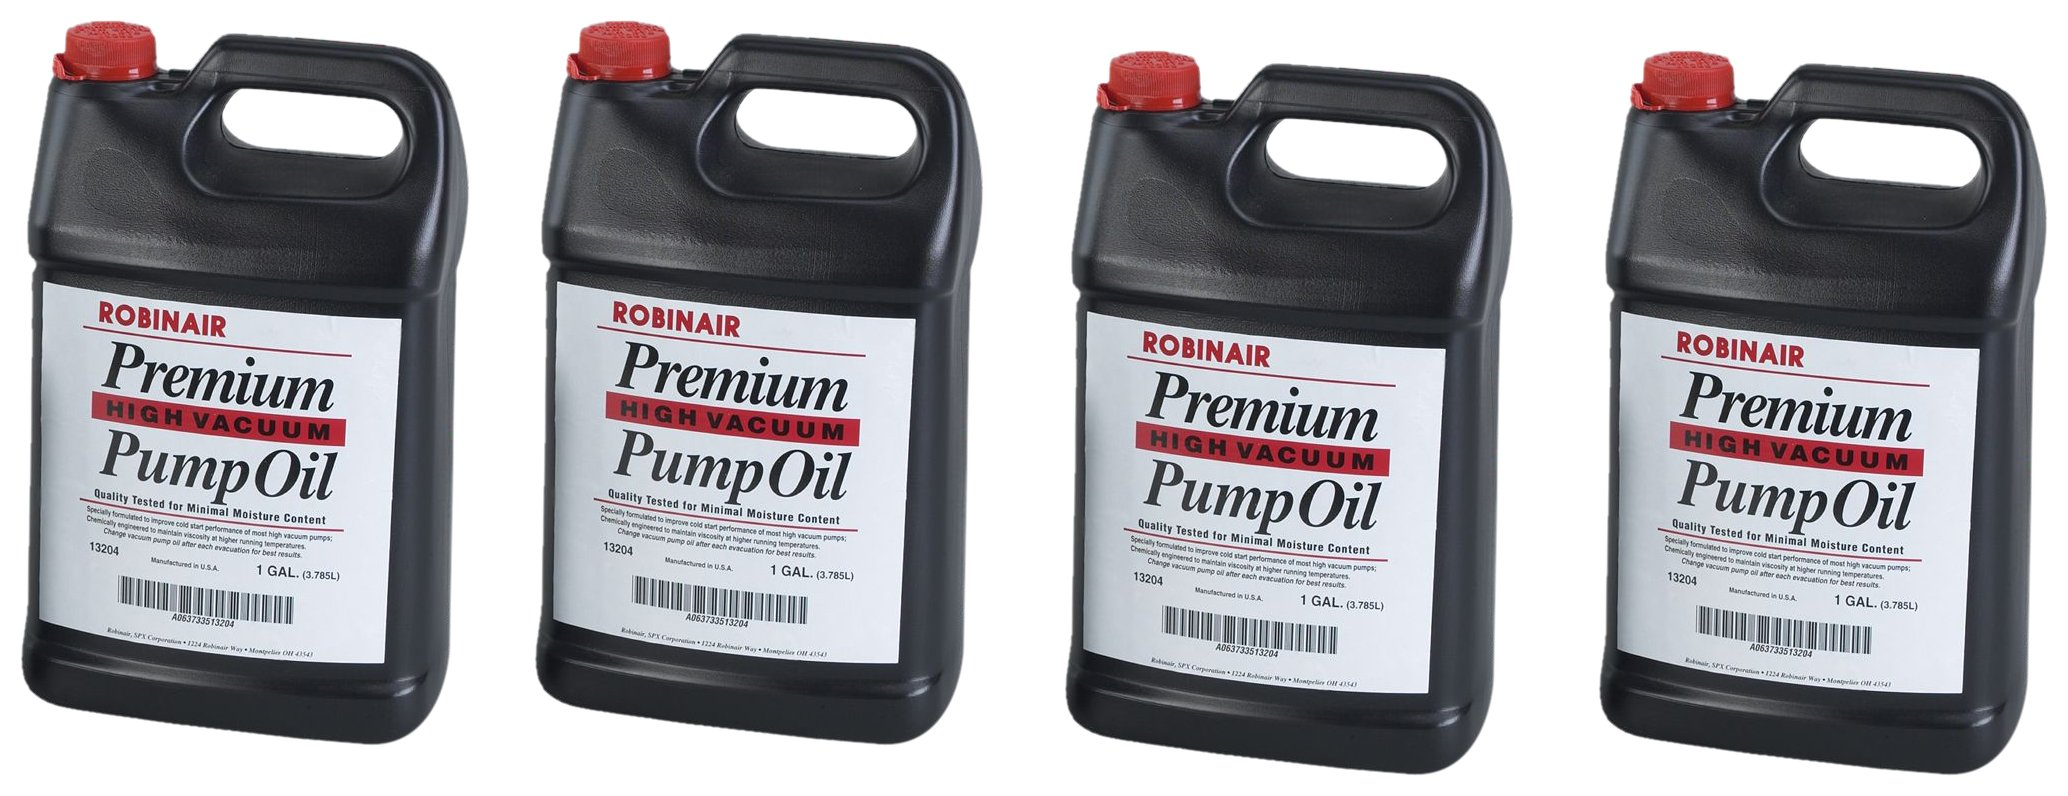 Robinair 13204 Premium High Vacuum Pump Oil - 4- one gallon jugs